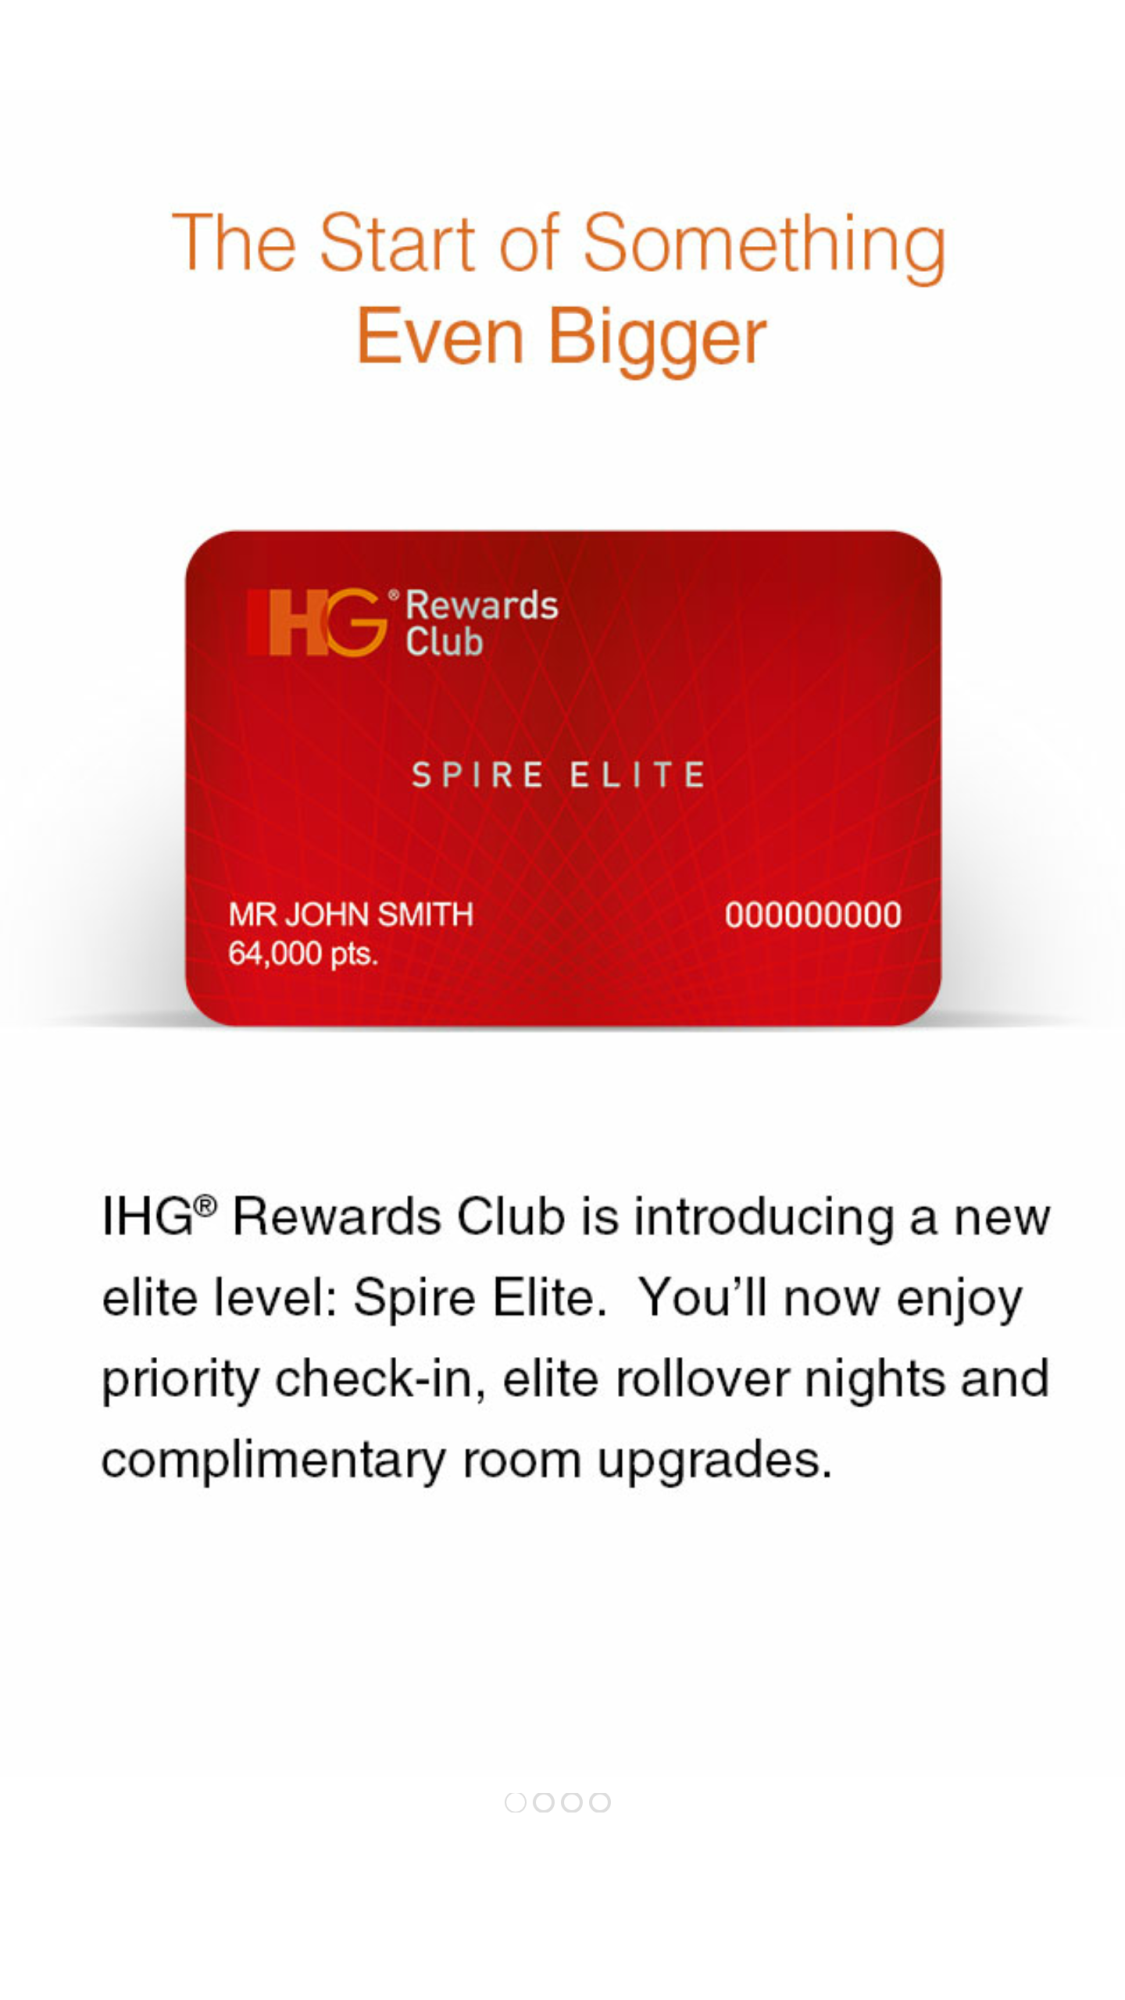 Changes are coming to IHG Rewards Club - New Elite Level